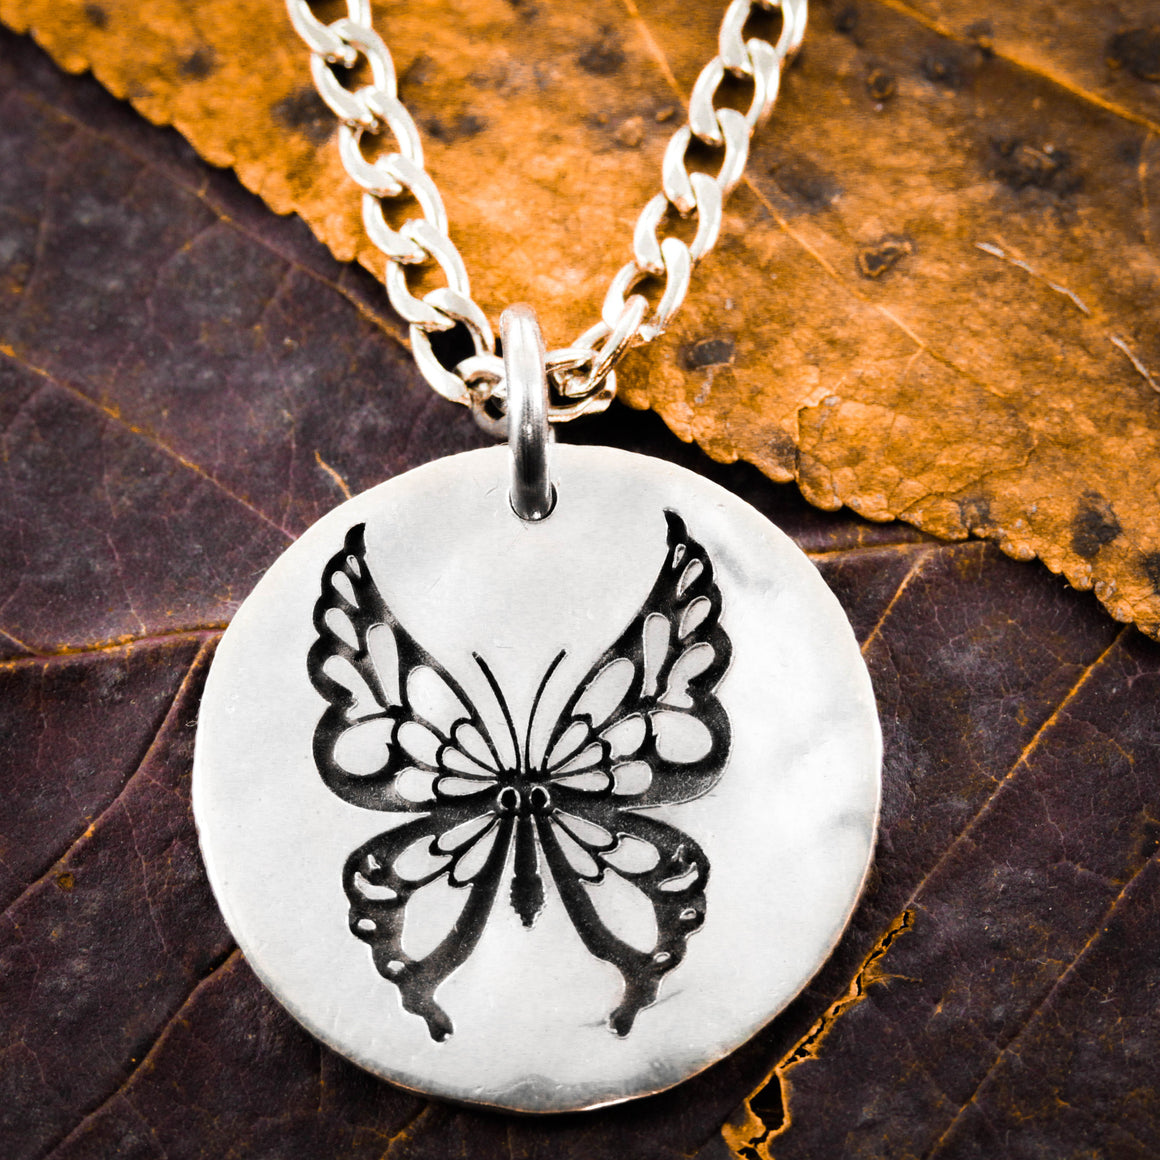 Butterfly Engraved Necklace, Hammered Silver Charm